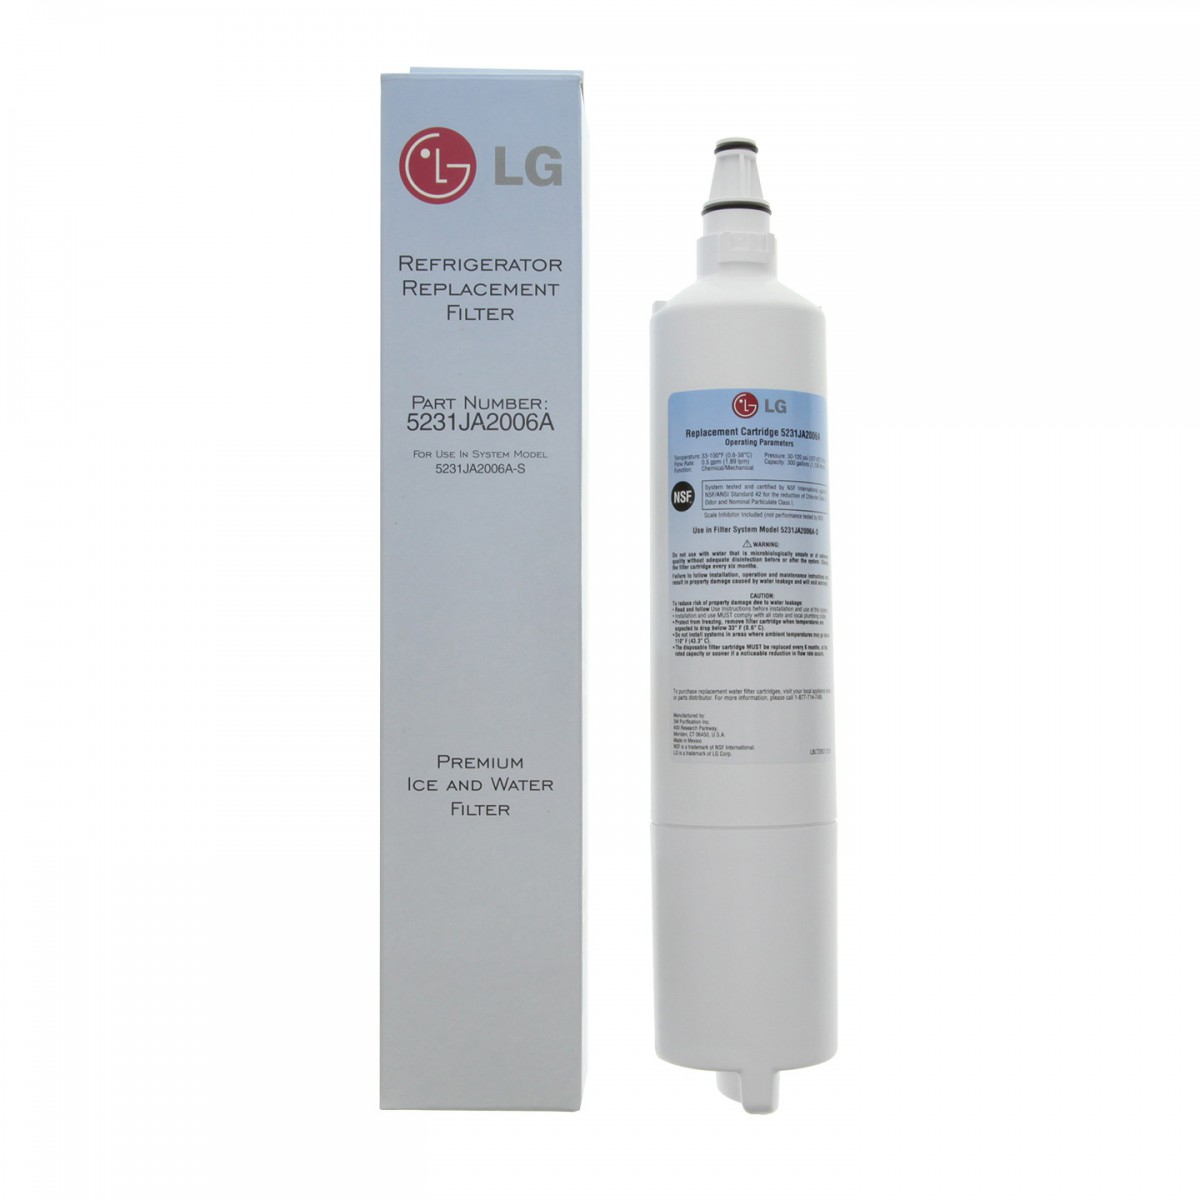 lg refrigerator replacement filter. lg 5231ja2006a refrigerator water filter replacement cartridge lg g